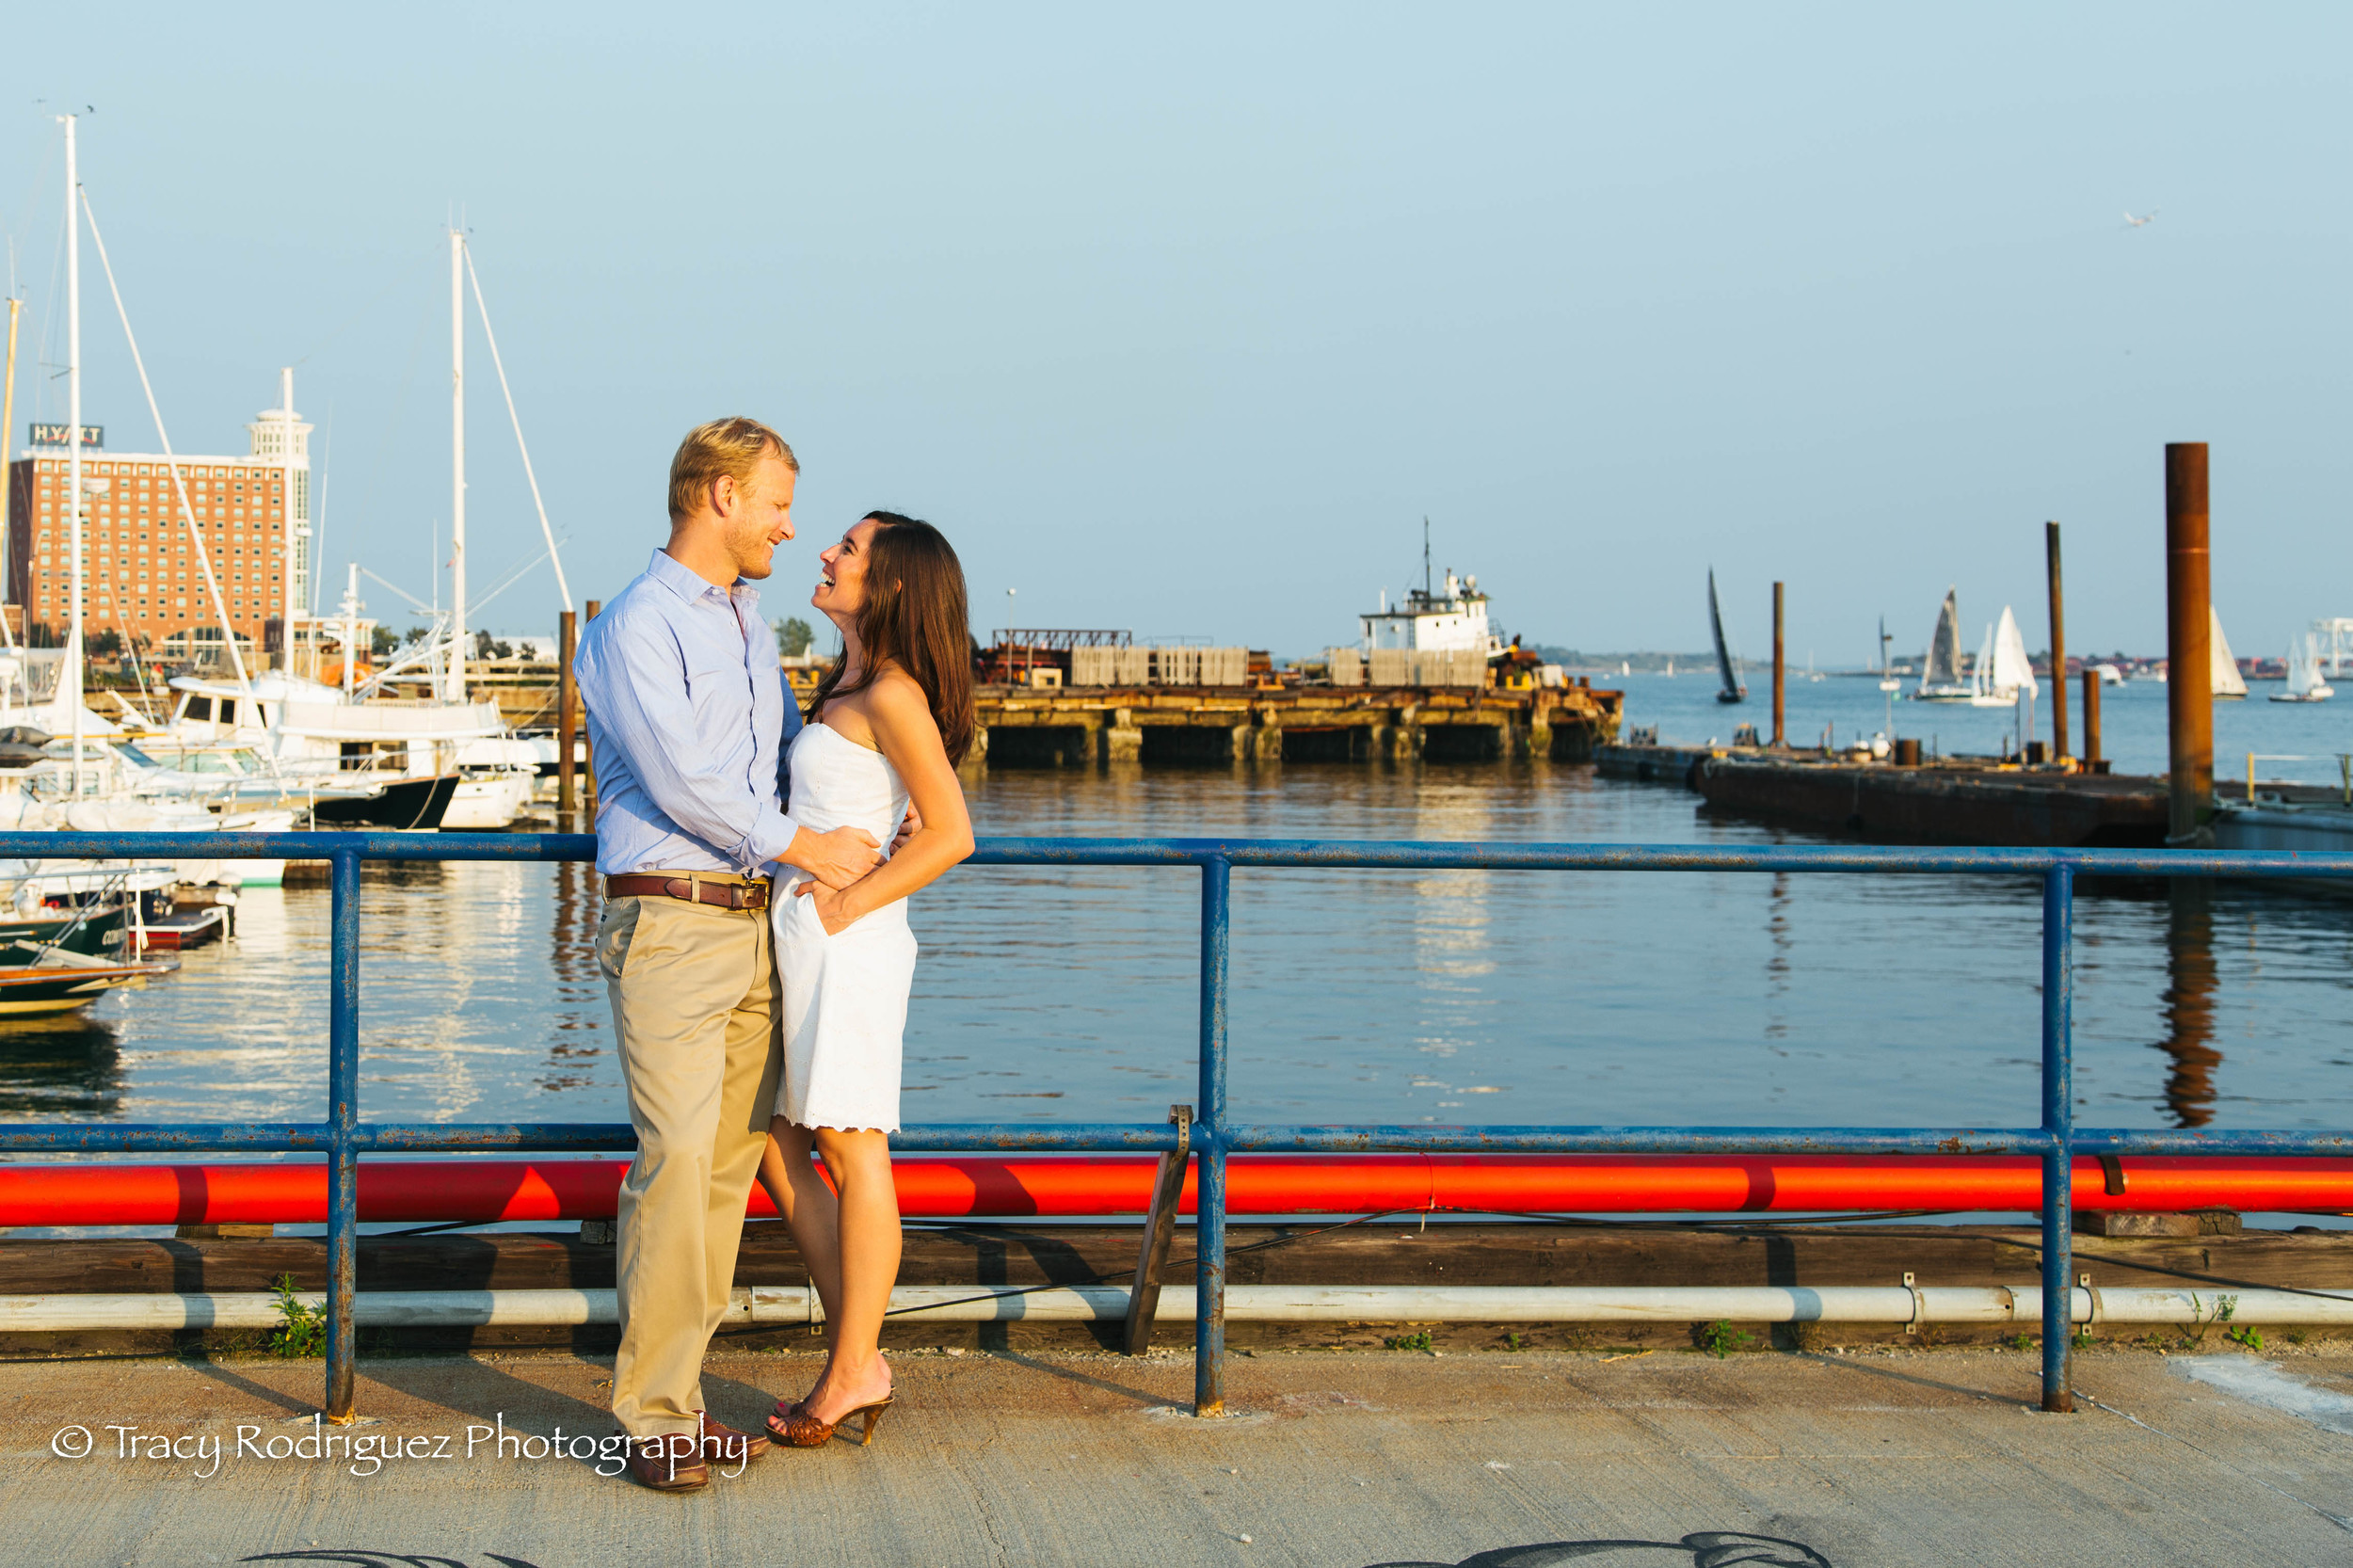 TracyRodriguezPhotography-Engagement-LowRes-17.jpg